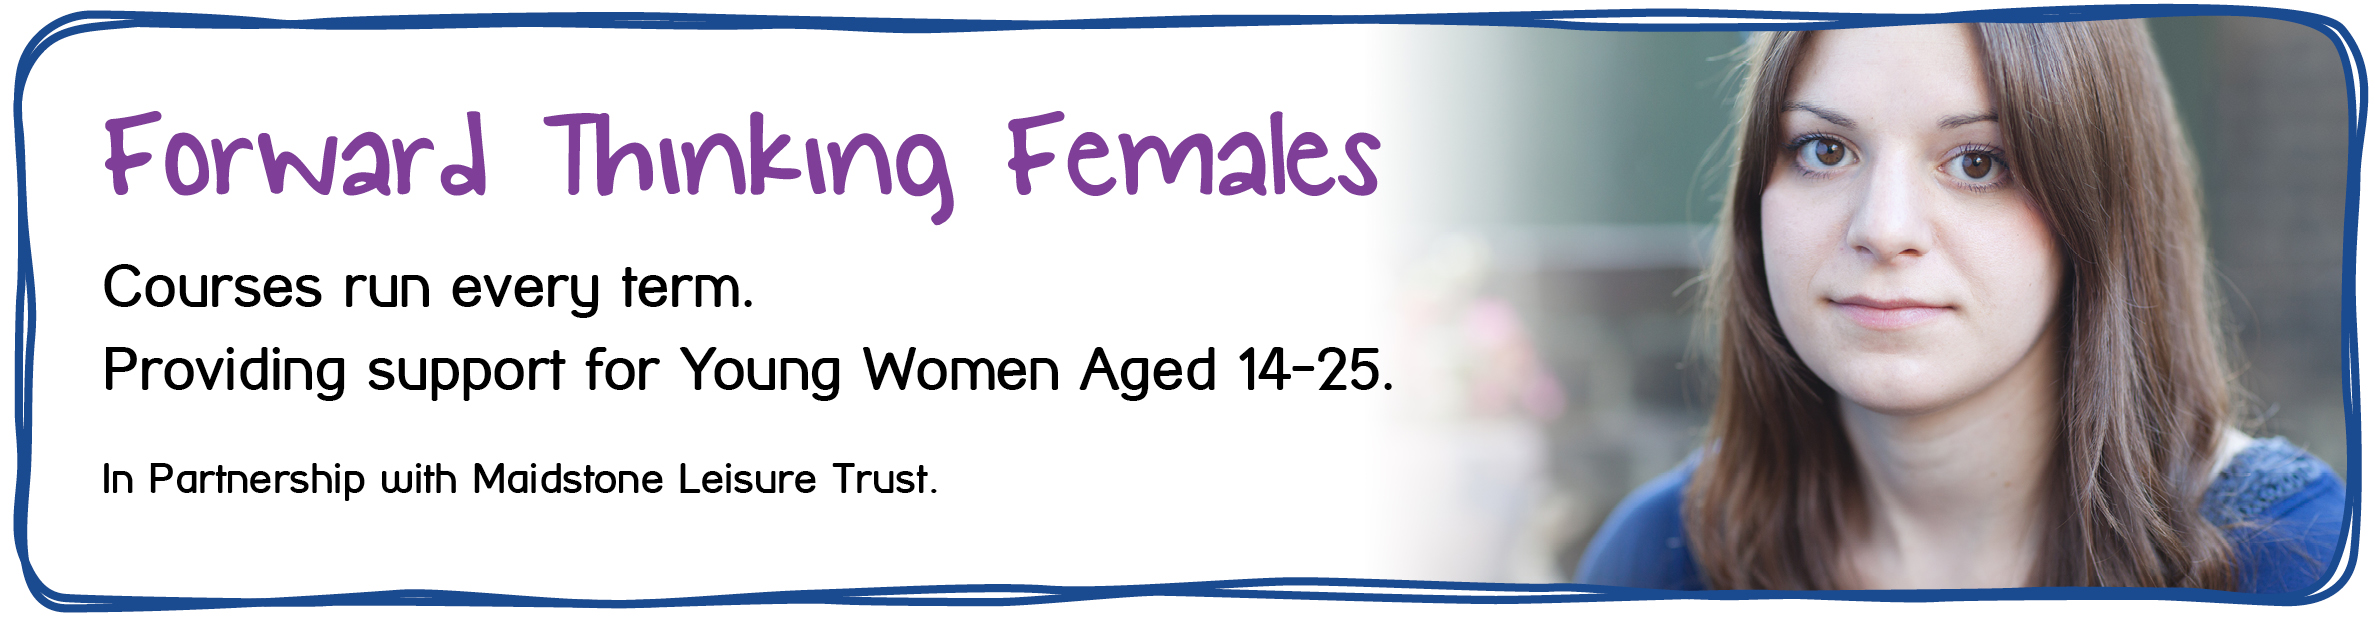 Forward Thinking Females - Courses run every term providing support for Young Women Aged 14-25.